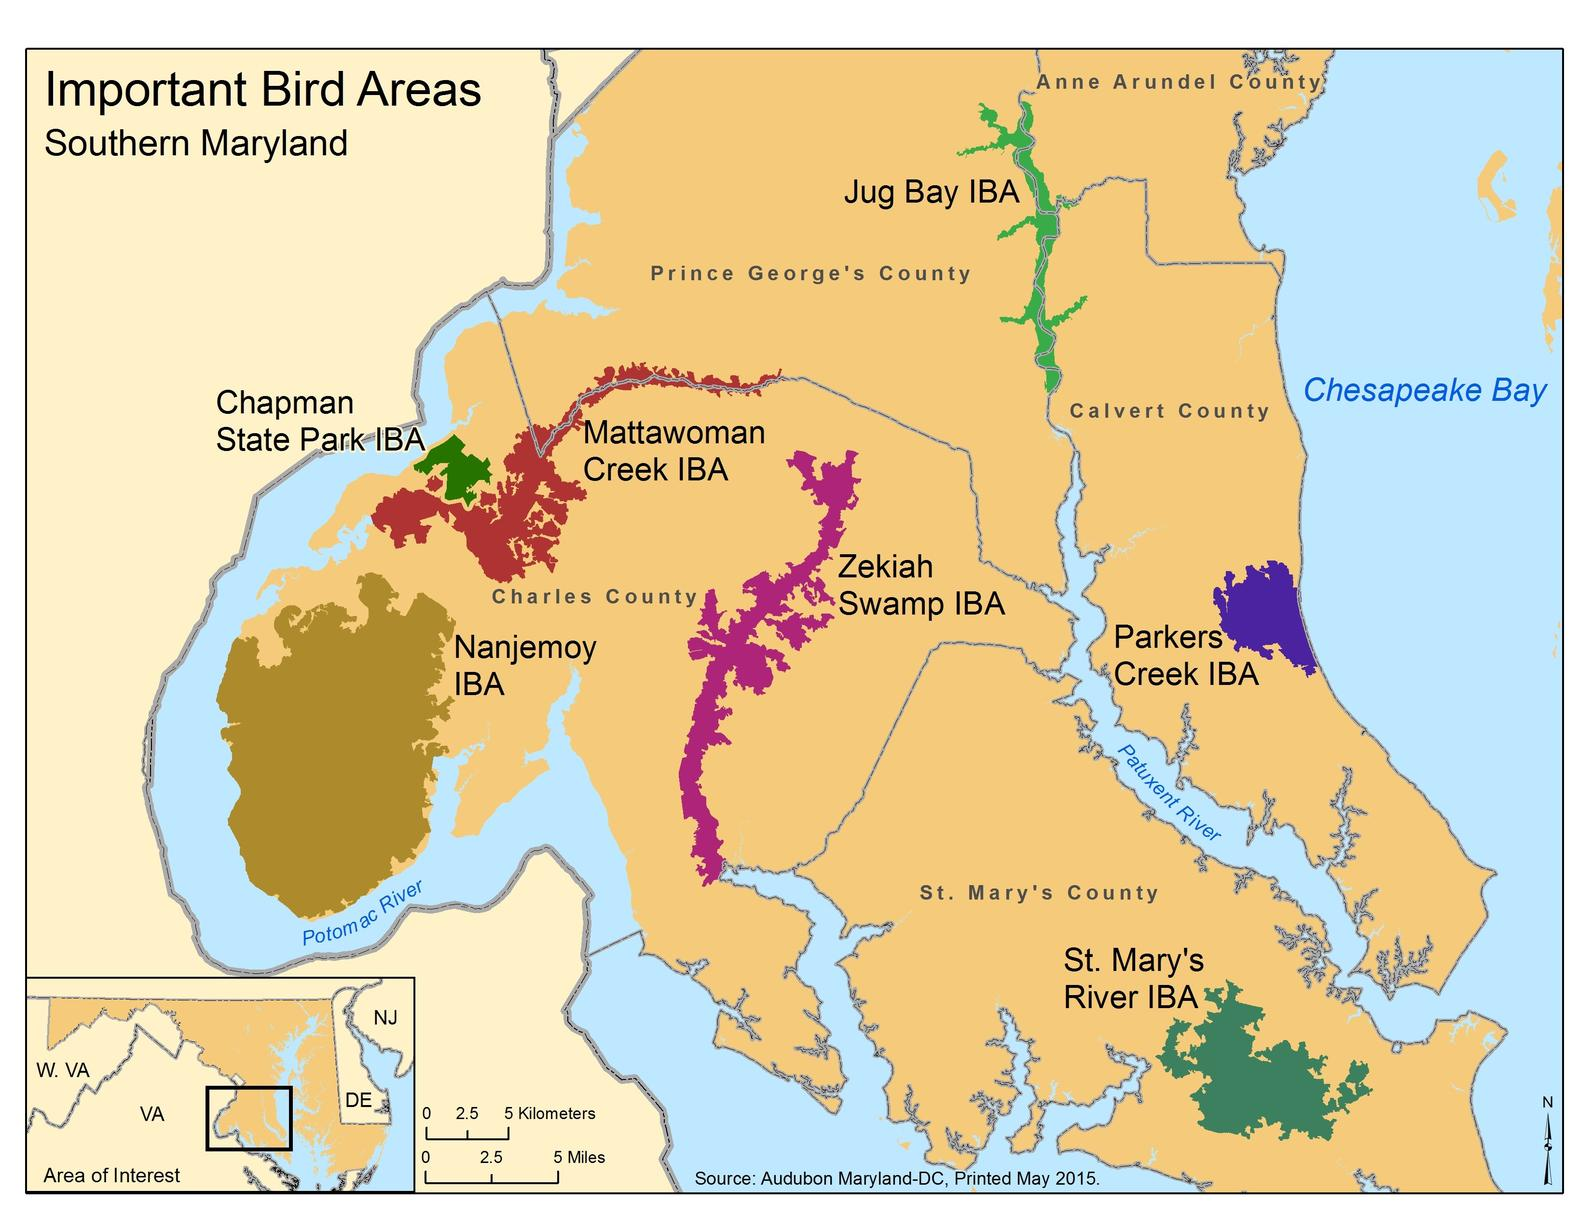 Map Of Southern Maryland Southern Maryland Important Bird Areas Inform Land Use Planning  Map Of Southern Maryland